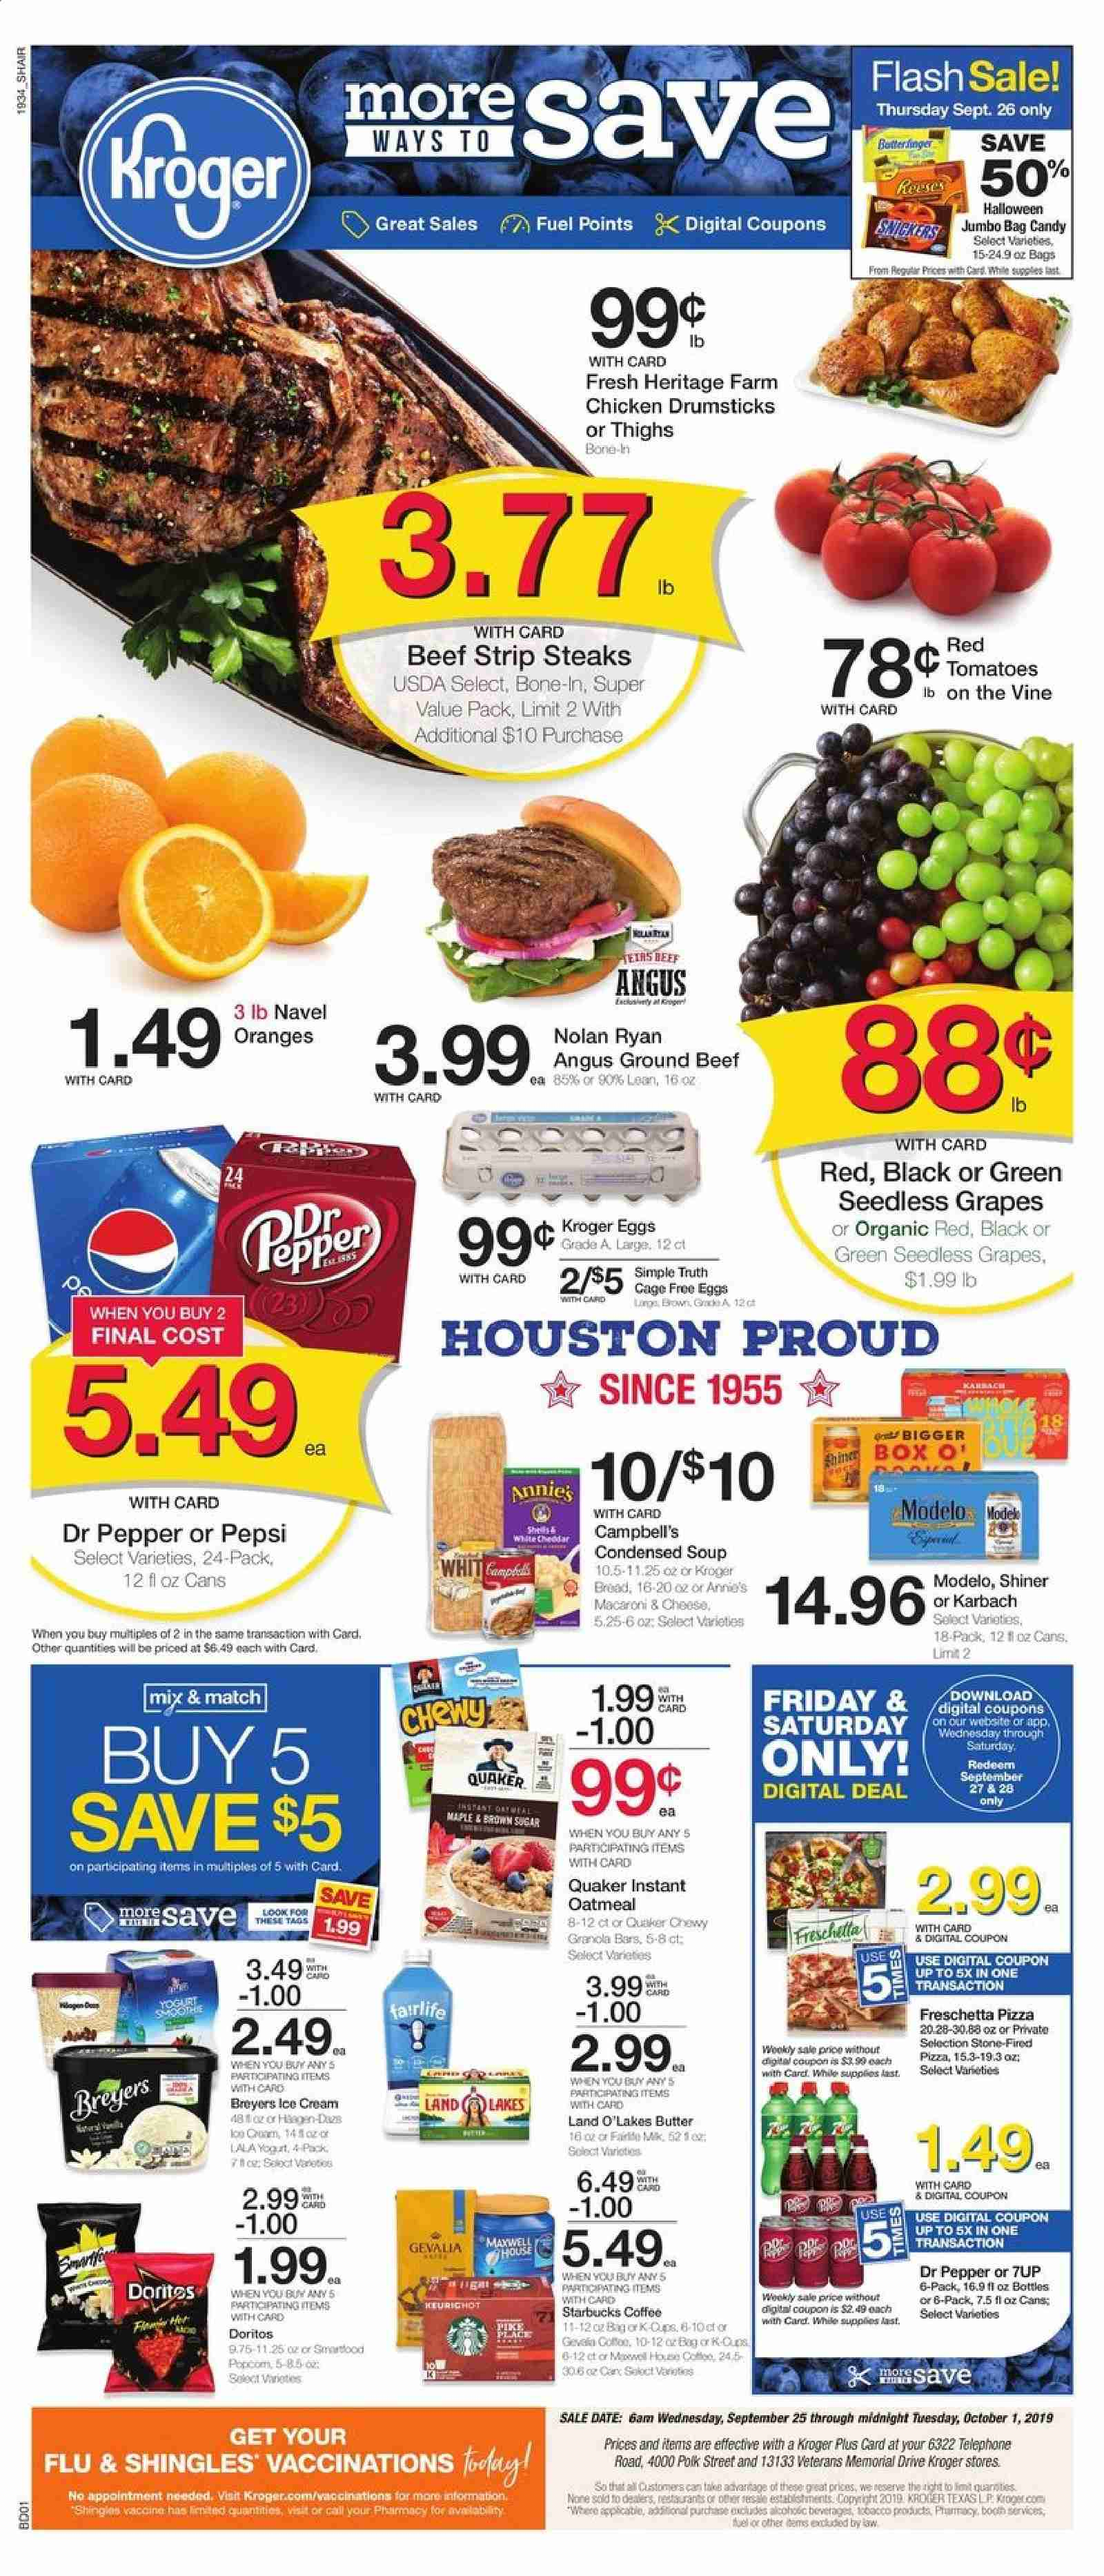 Kroger Flyer - 09.25.2019 - 10.01.2019 - Sales products - bag, beef meat, box, butter, campbell's, coffee, doritos, eggs, granola, granola bars, grapes, ground beef, maxwell house, seedless grapes, shingle, sugar, tomatoes, yogurt, pike, pizza, polk, cheddar, chicken, chicken drumsticks, pepsi, oatmeal, orange, organic, candy, macaroni, condensed soup, soup, pepper, shiner, dr. pepper, cream. Page 1.